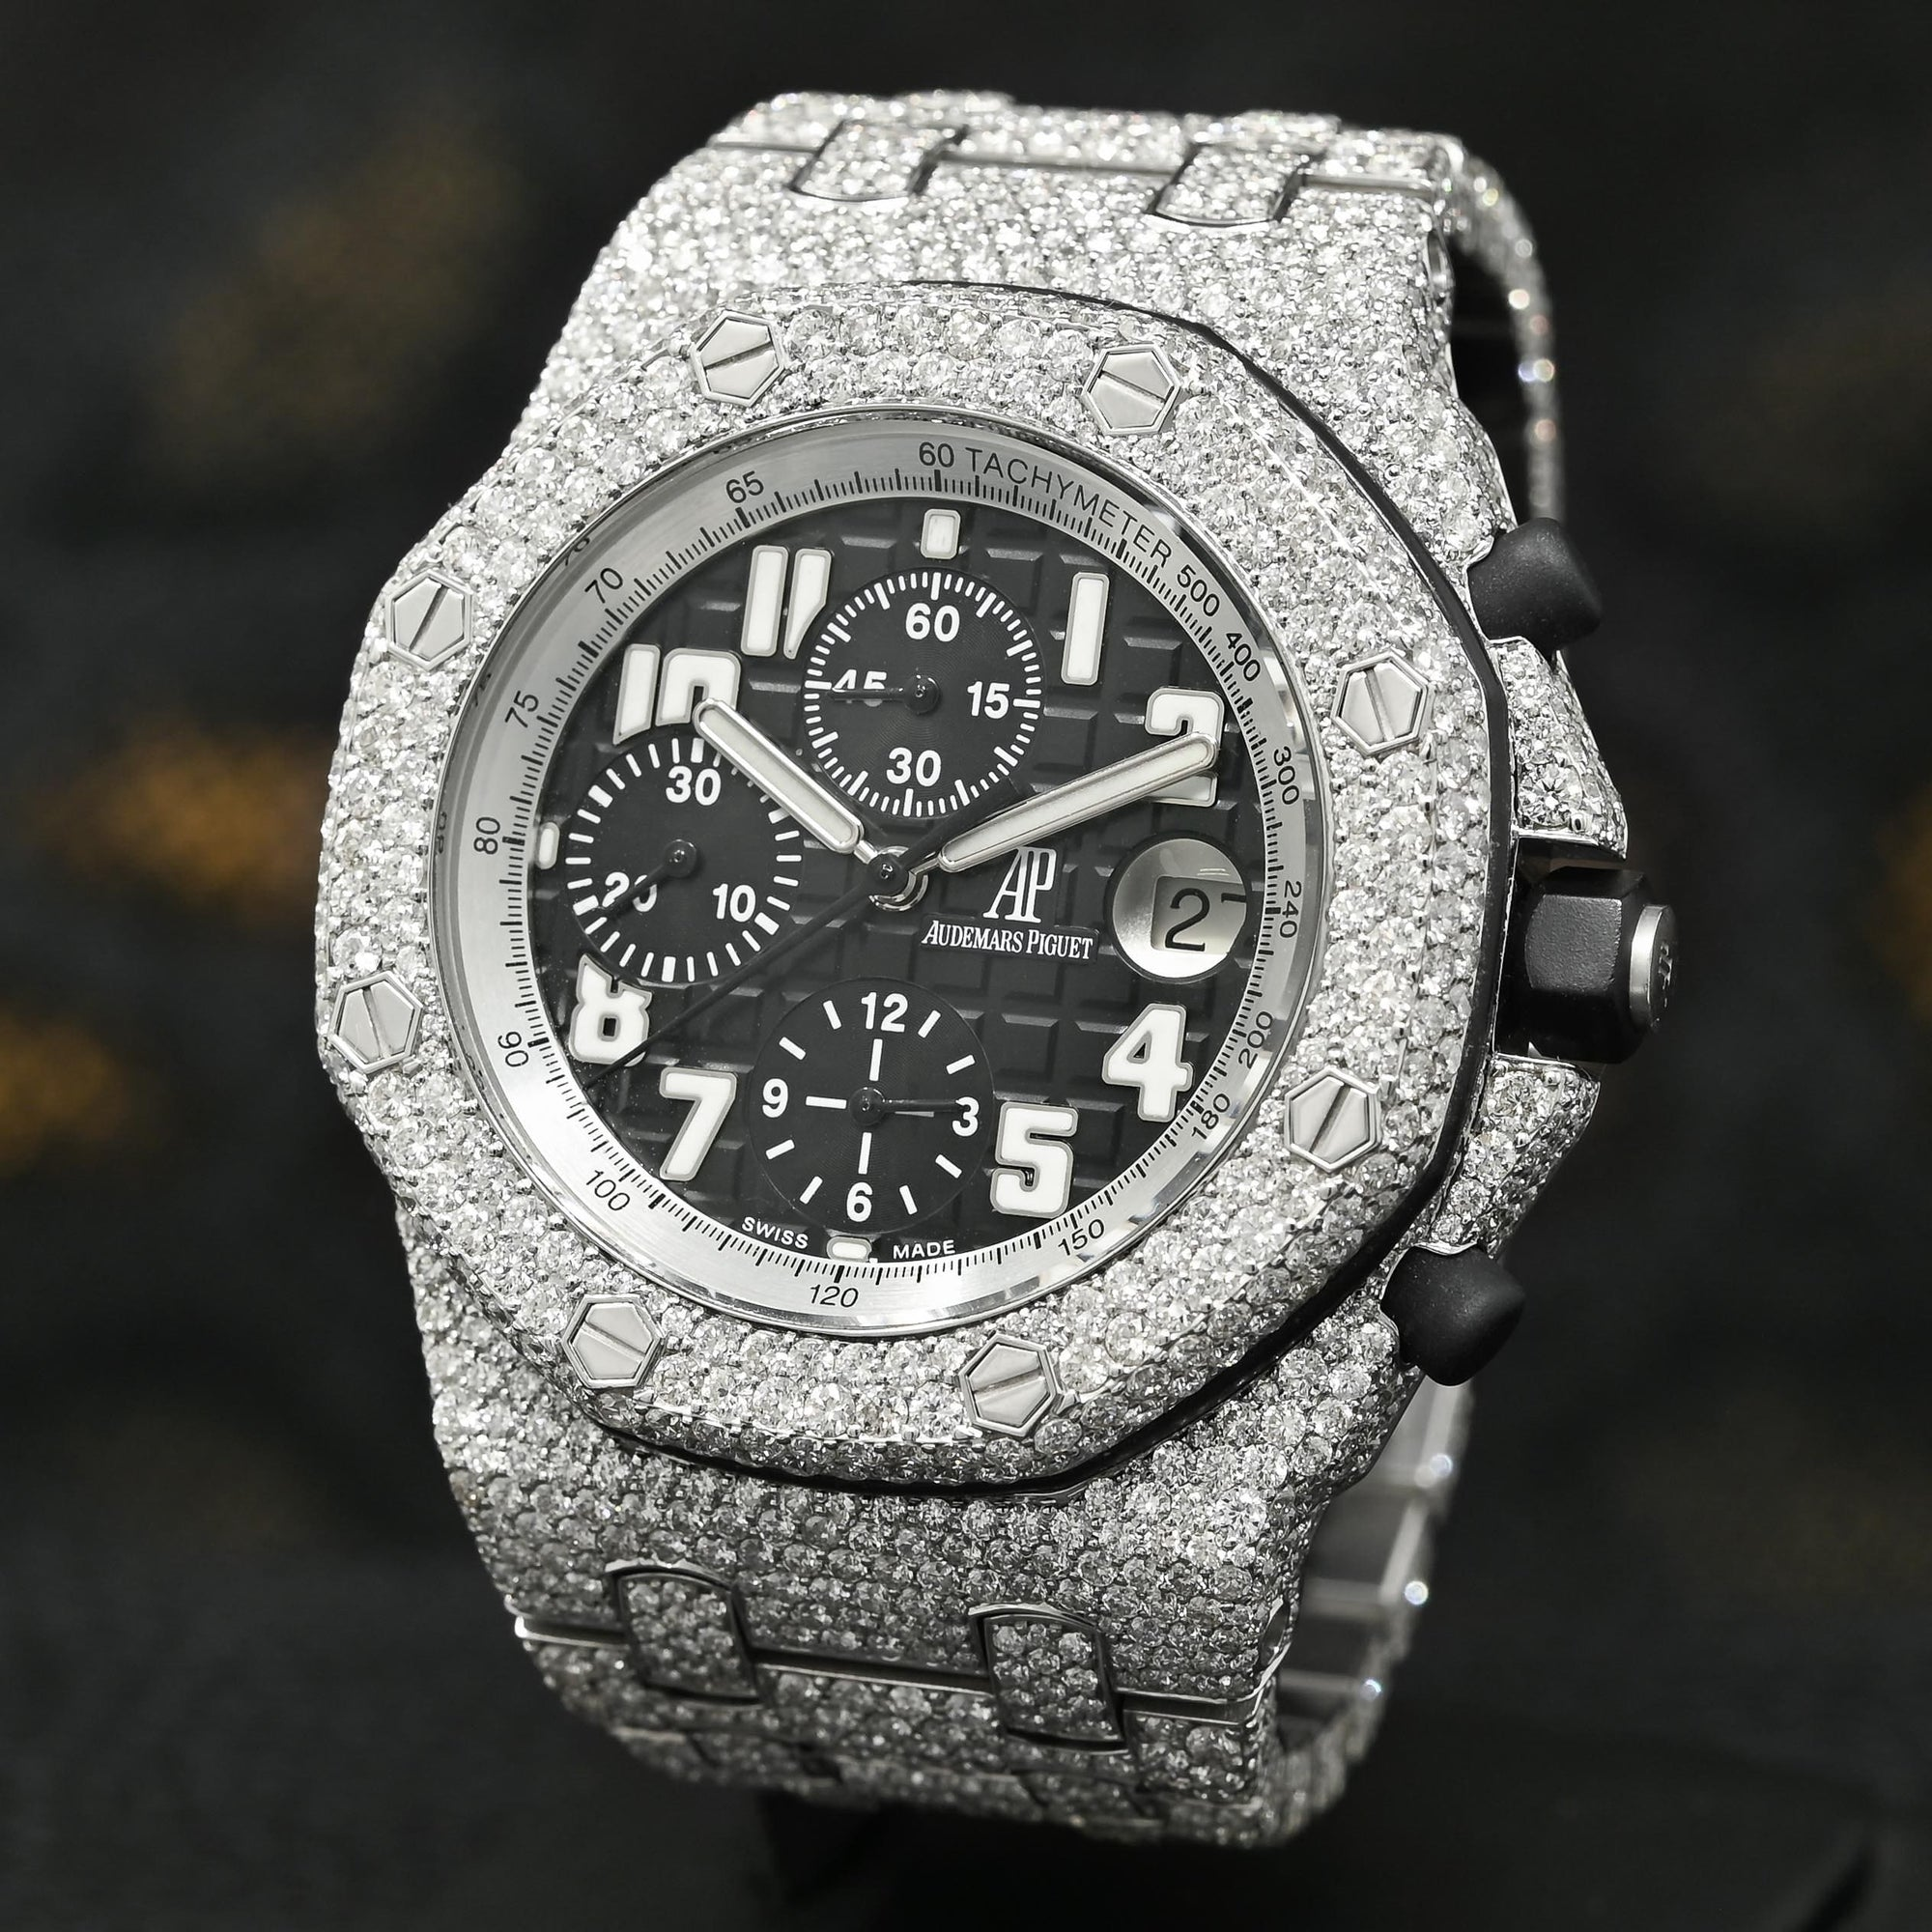 42mm Audemars Piguet Offshore - Black Iced